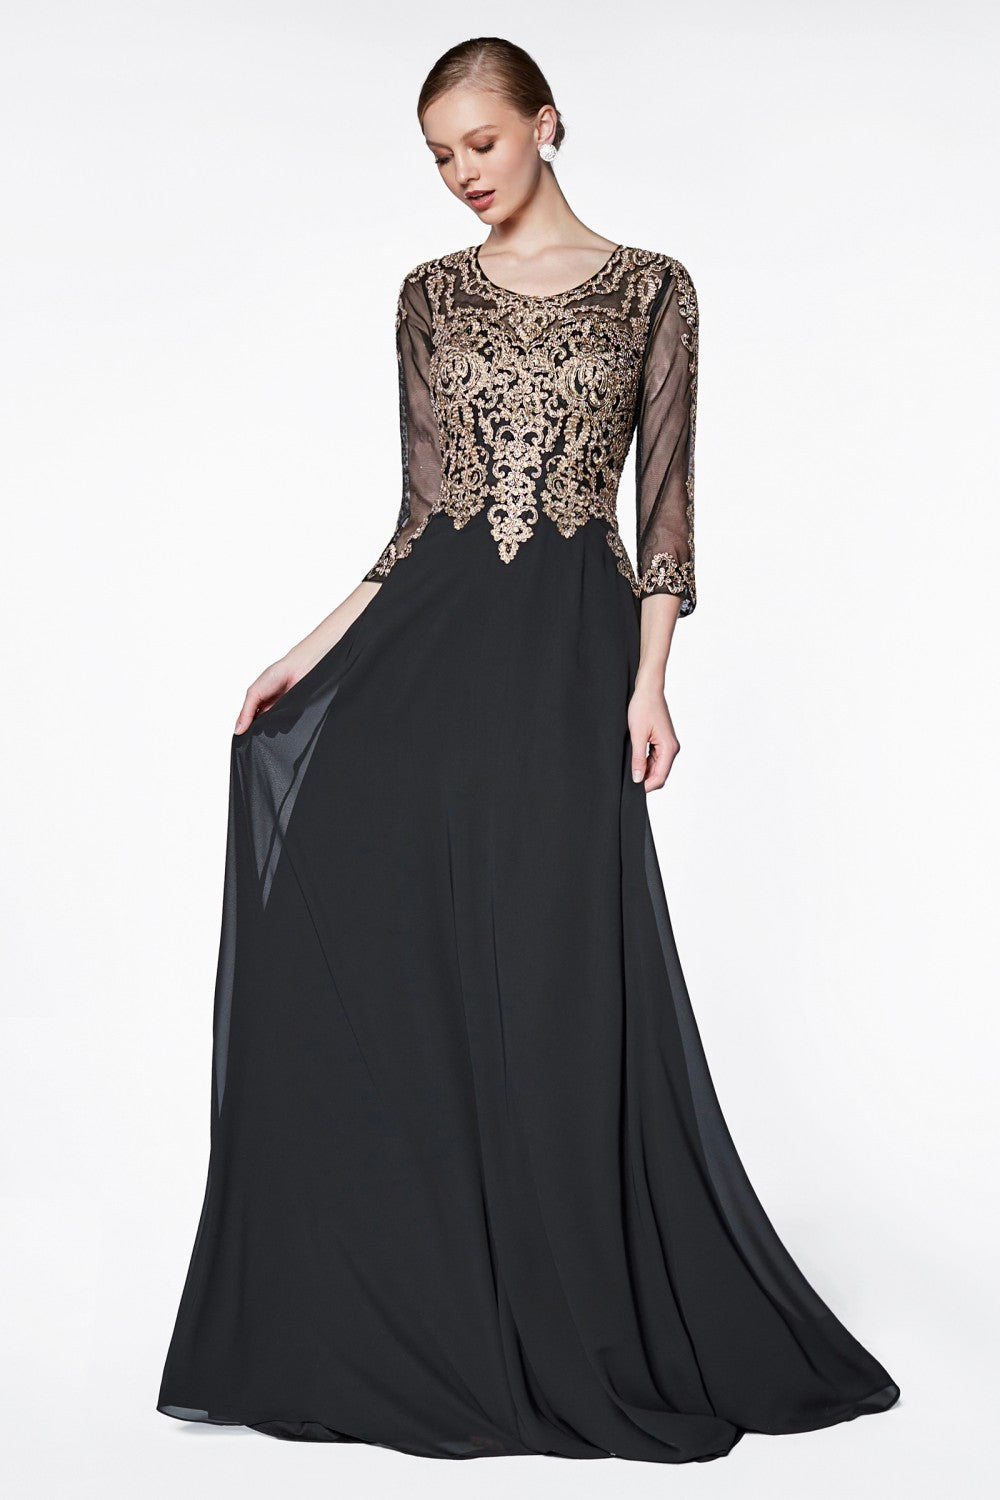 Flowy A-Line Chiffon Gown With Three-Quarter Sleeves, Lace Detailed Bodice And Closed Back